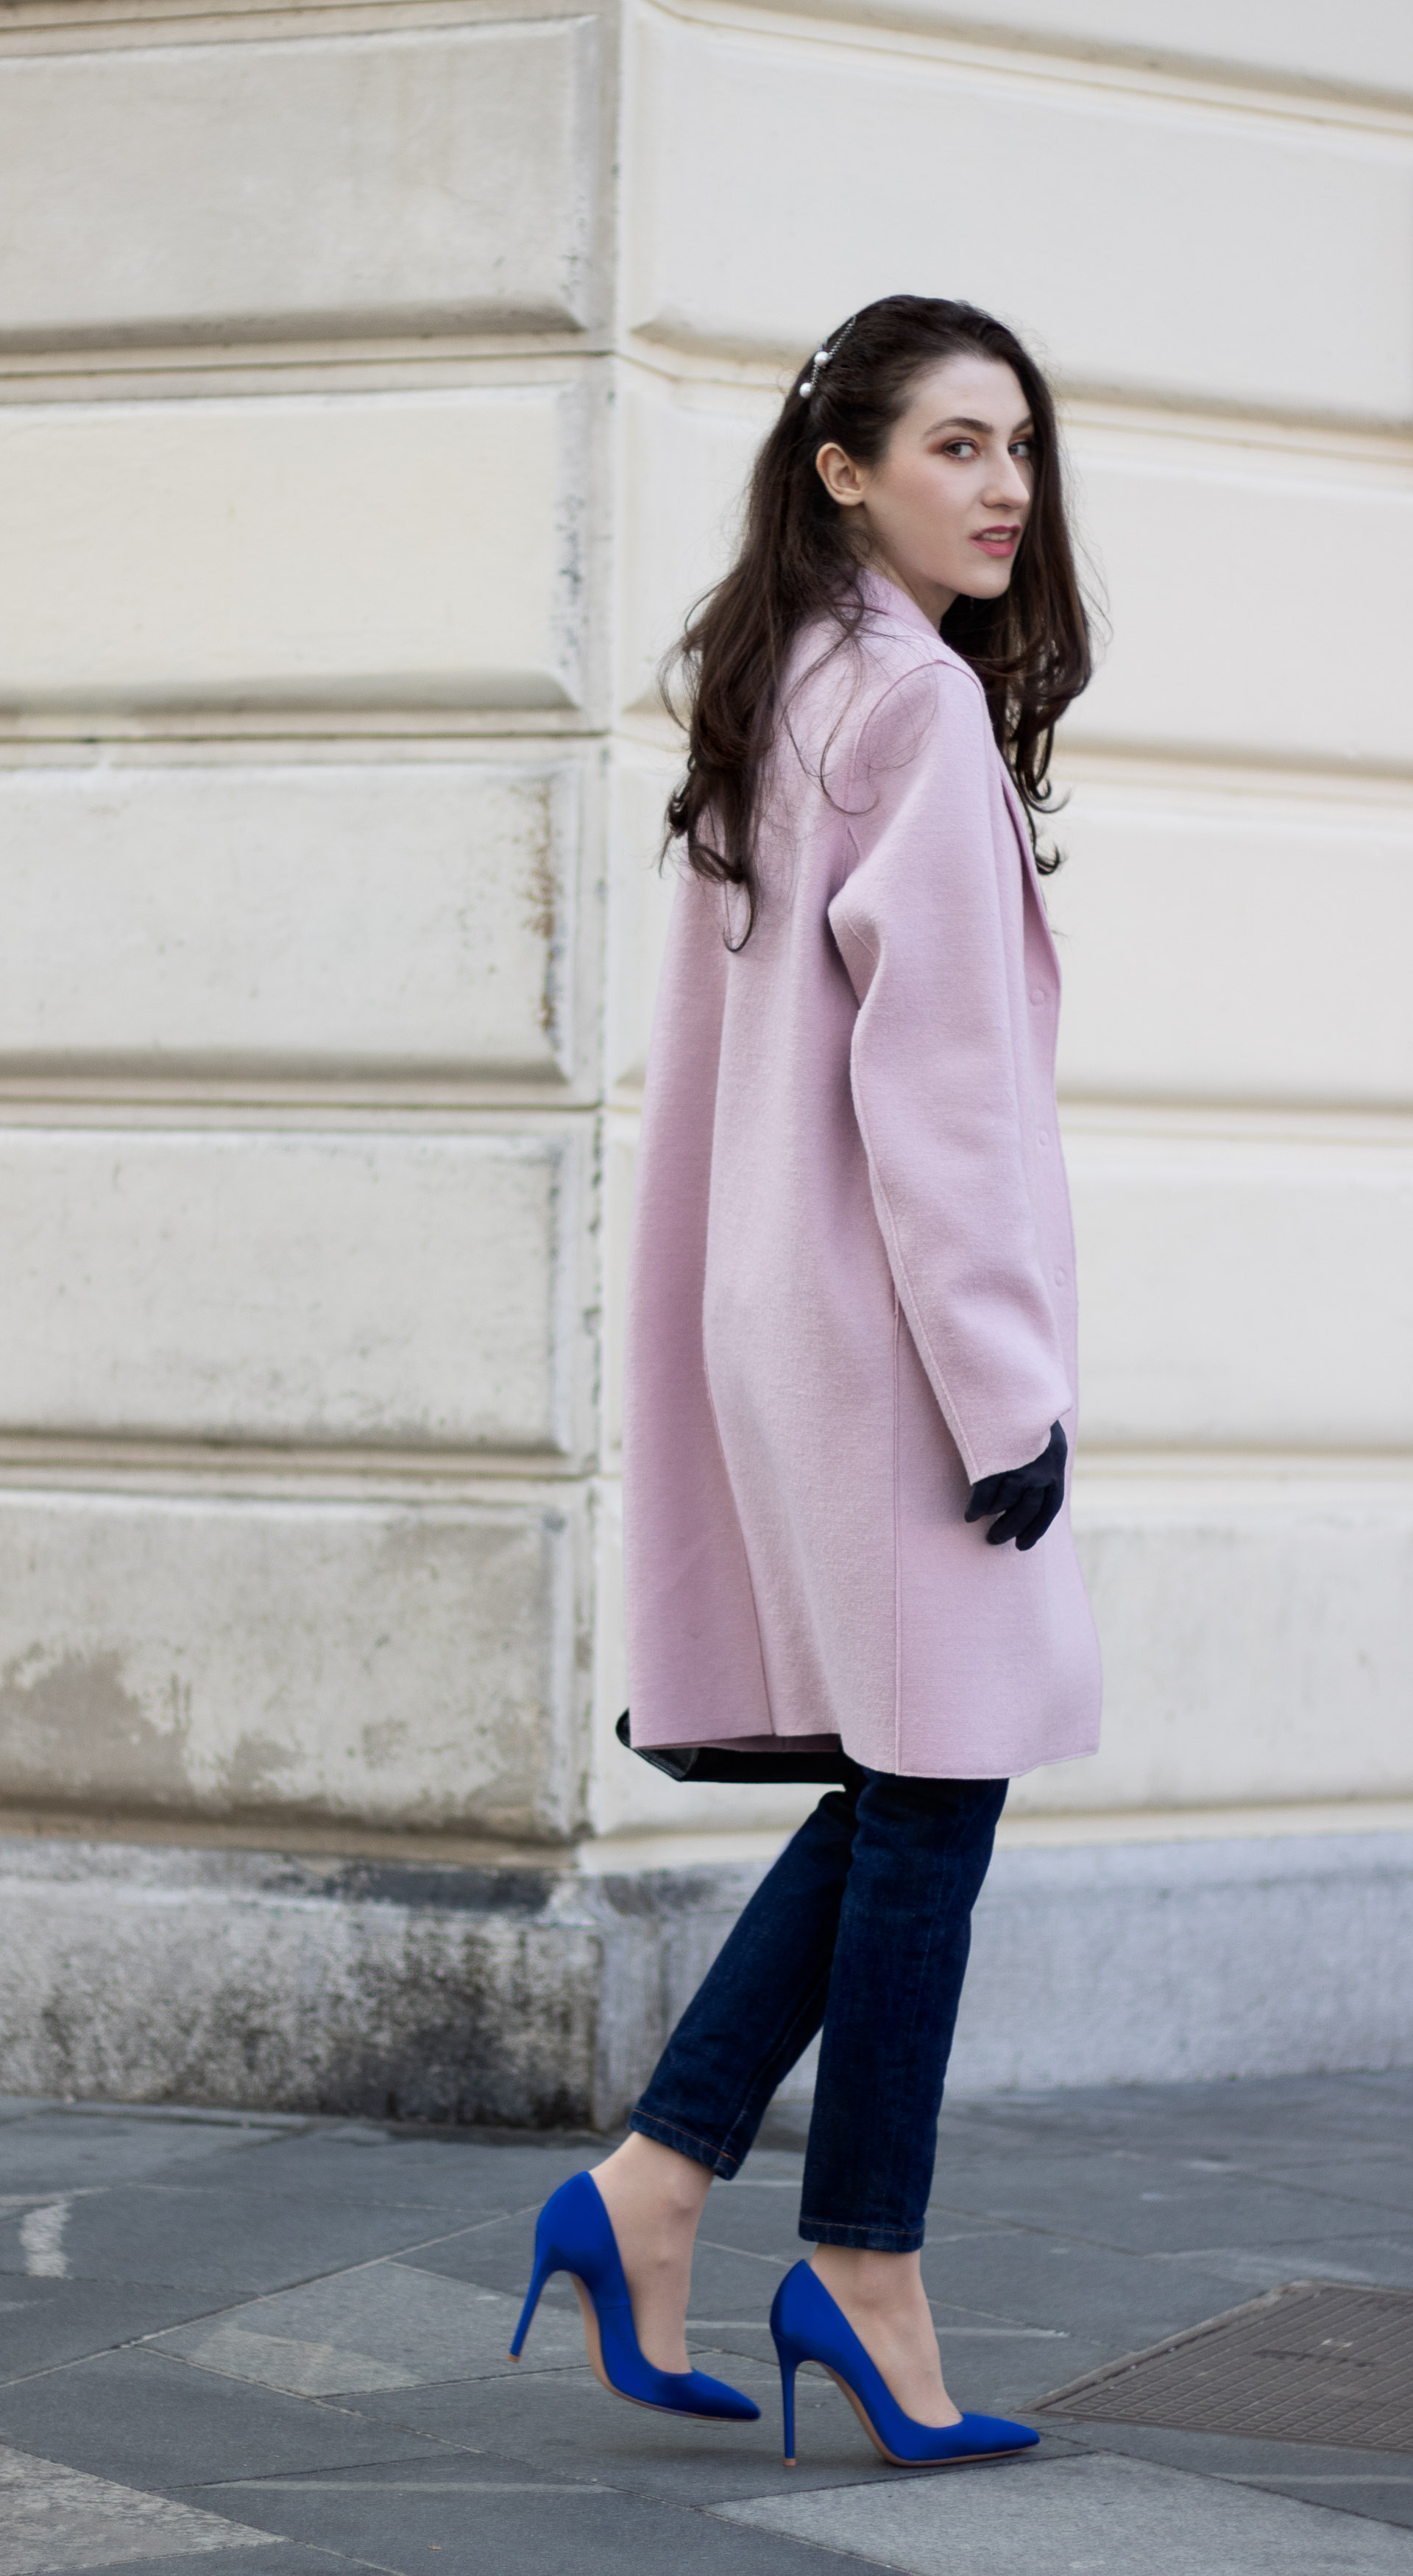 Must follow Fashion Blogger Veronika Lipar of Brunette from Wall Street dressed in oversize pink Harris Wharf London coat A.P.C. Paris dark blue denim jeans Gianvito Rossi blue heels black top handle bag Forzieri blue leather gloves pearl hairpin walking down the street